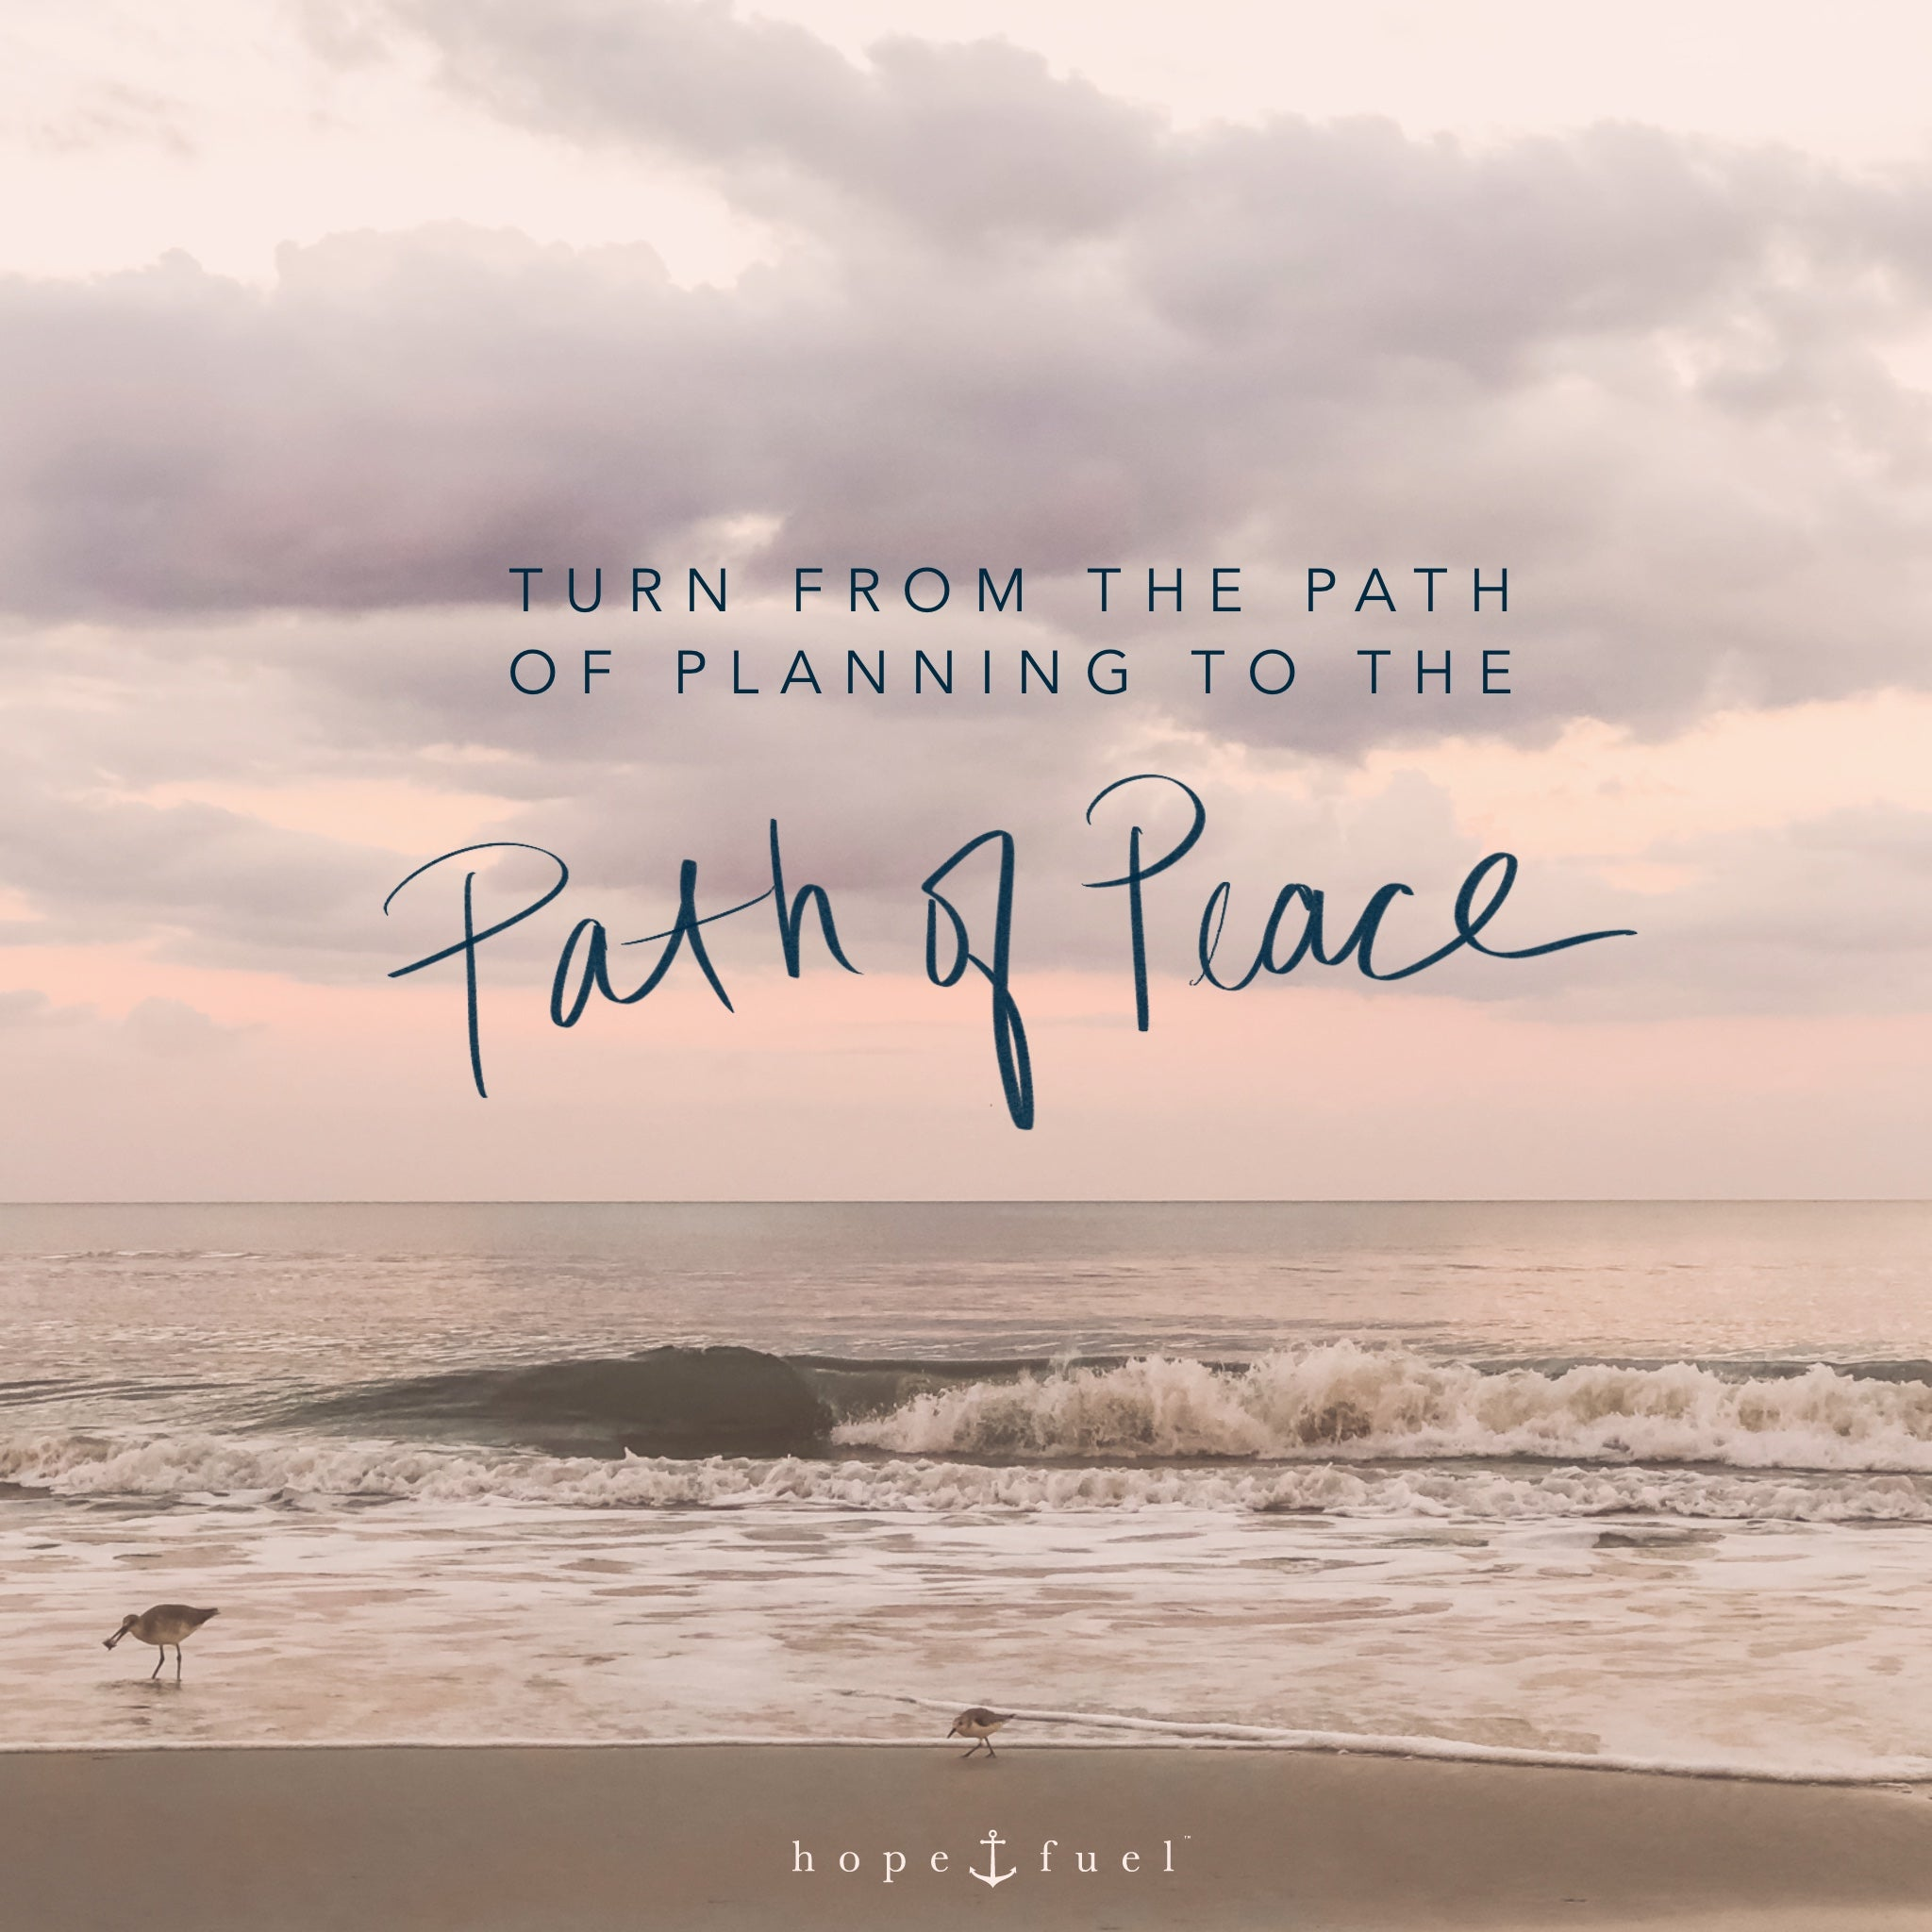 turn from the path of planning to the path of peace